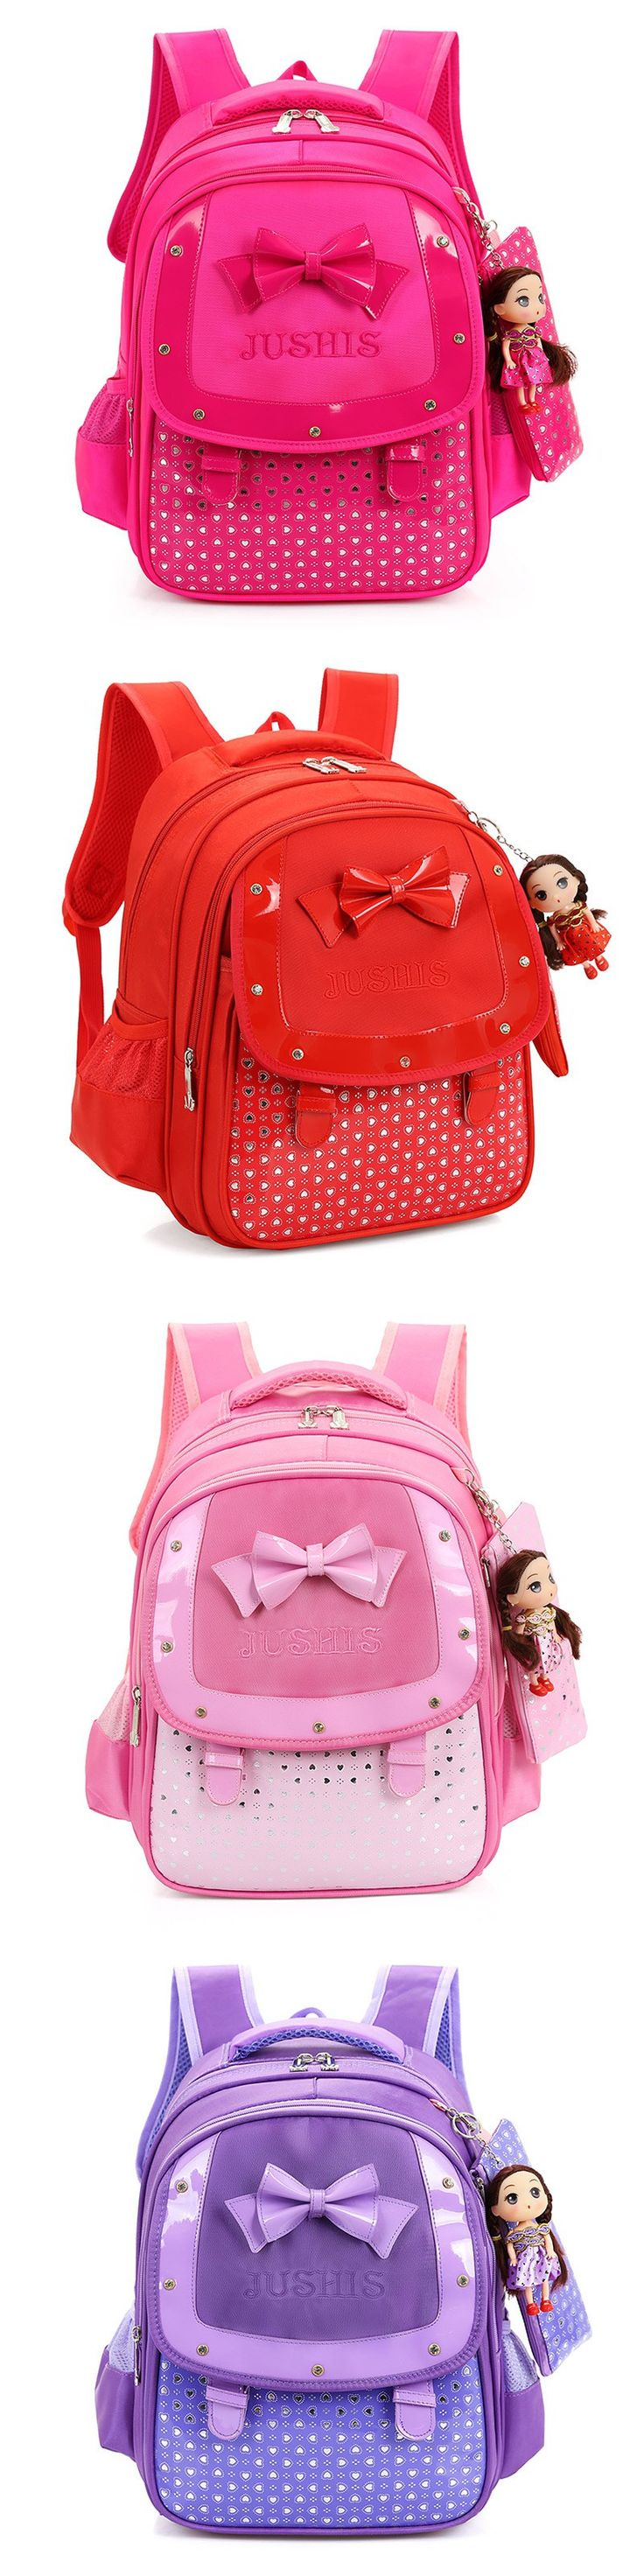 85 best images about bag on pinterest girls school bags louis